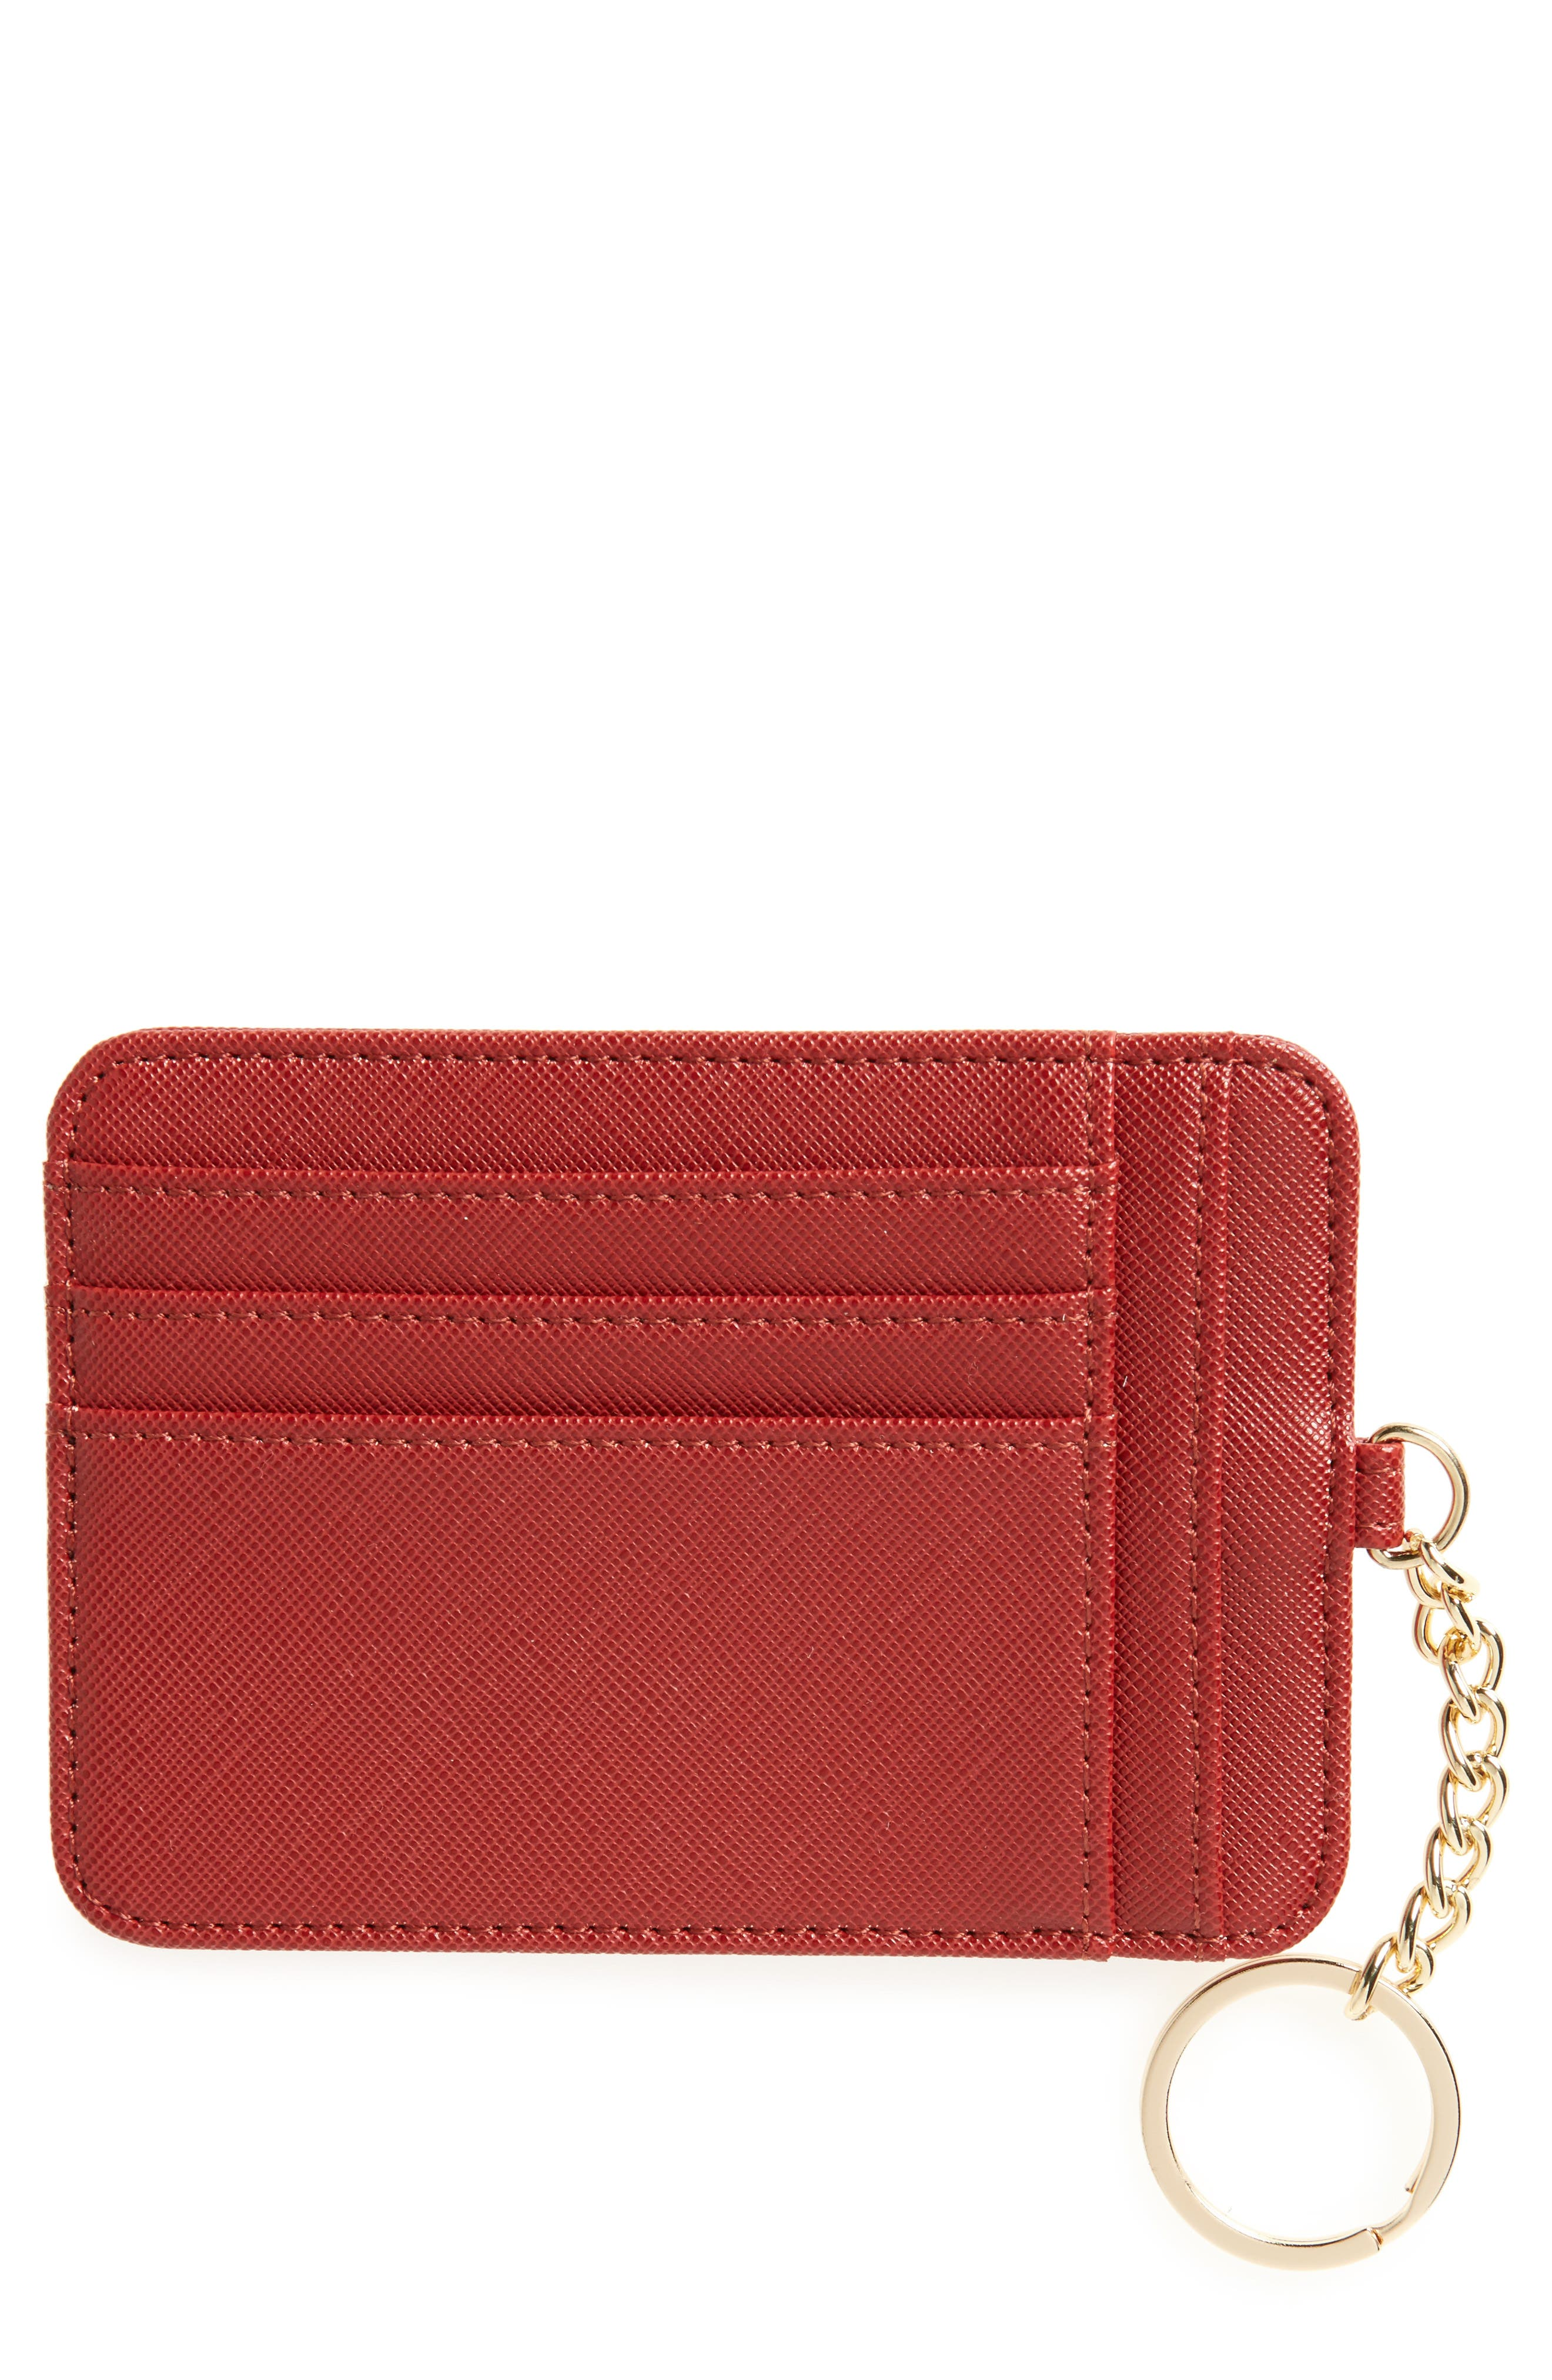 Alternate Image 1 Selected - BP. Faux Leather Zip Key Chain Card Case